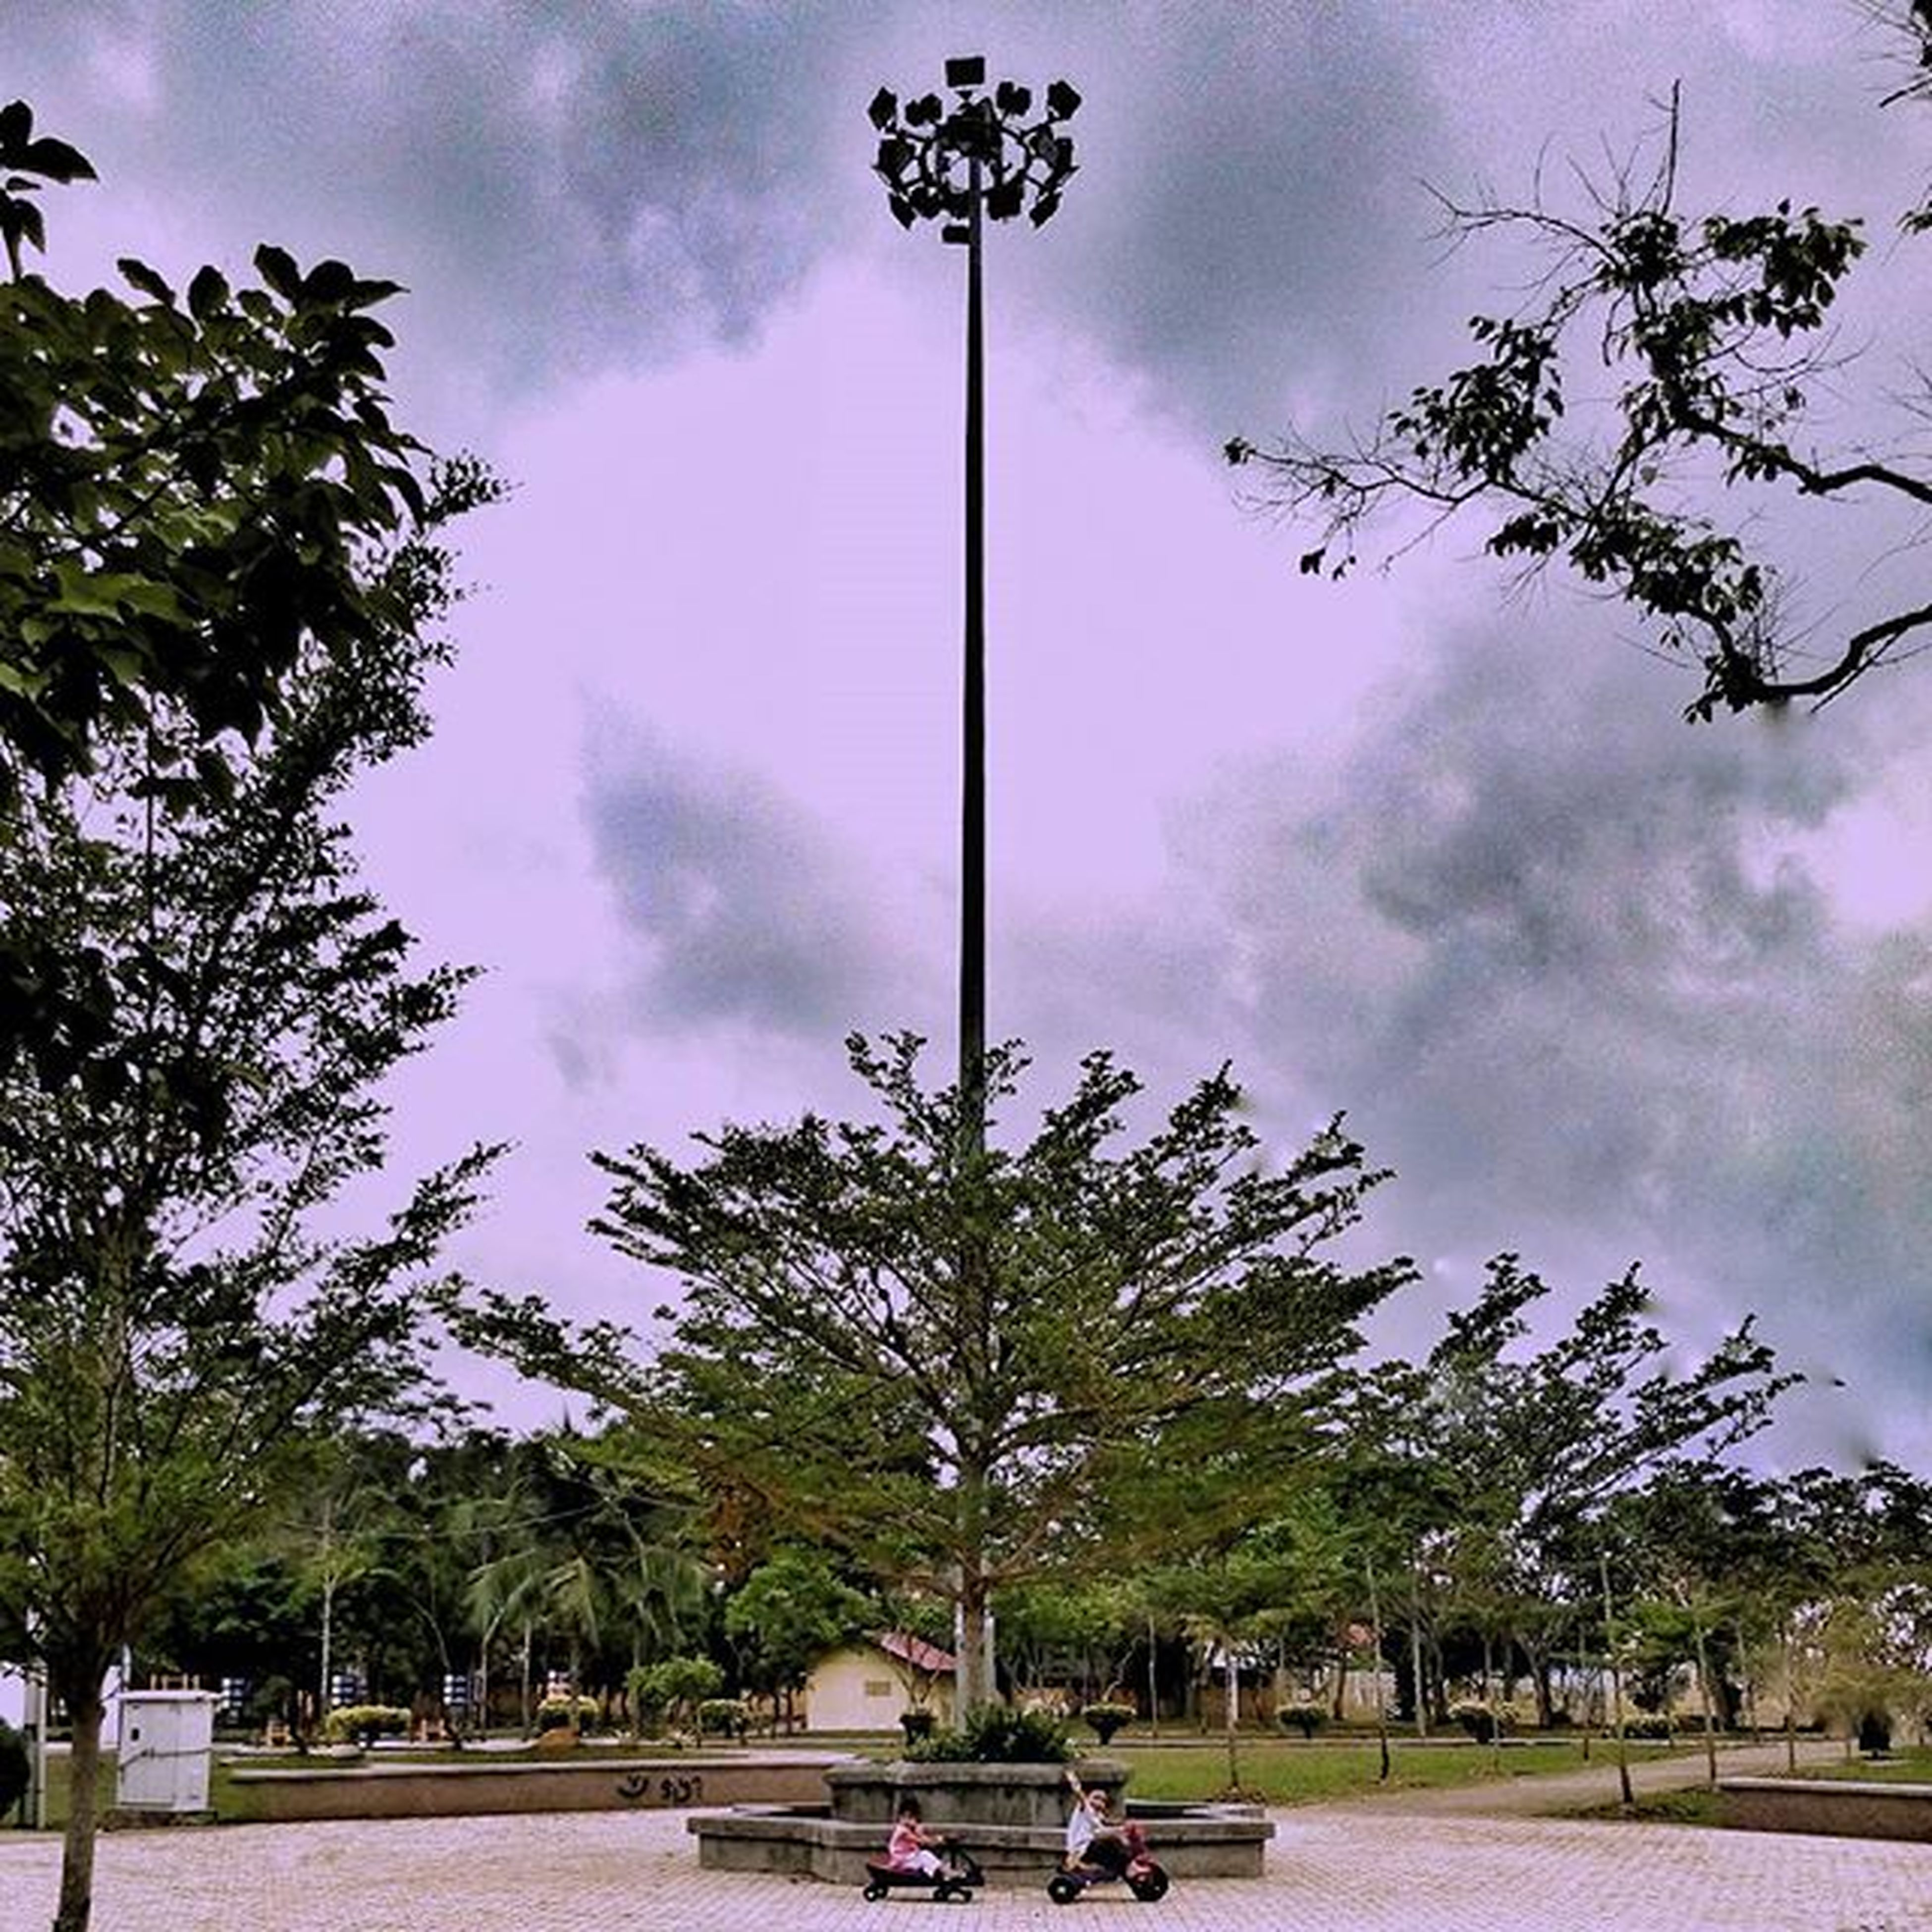 tree, sky, cloud - sky, street light, cloudy, cloud, transportation, park - man made space, street, growth, car, mode of transport, land vehicle, road, incidental people, nature, day, outdoors, low angle view, city